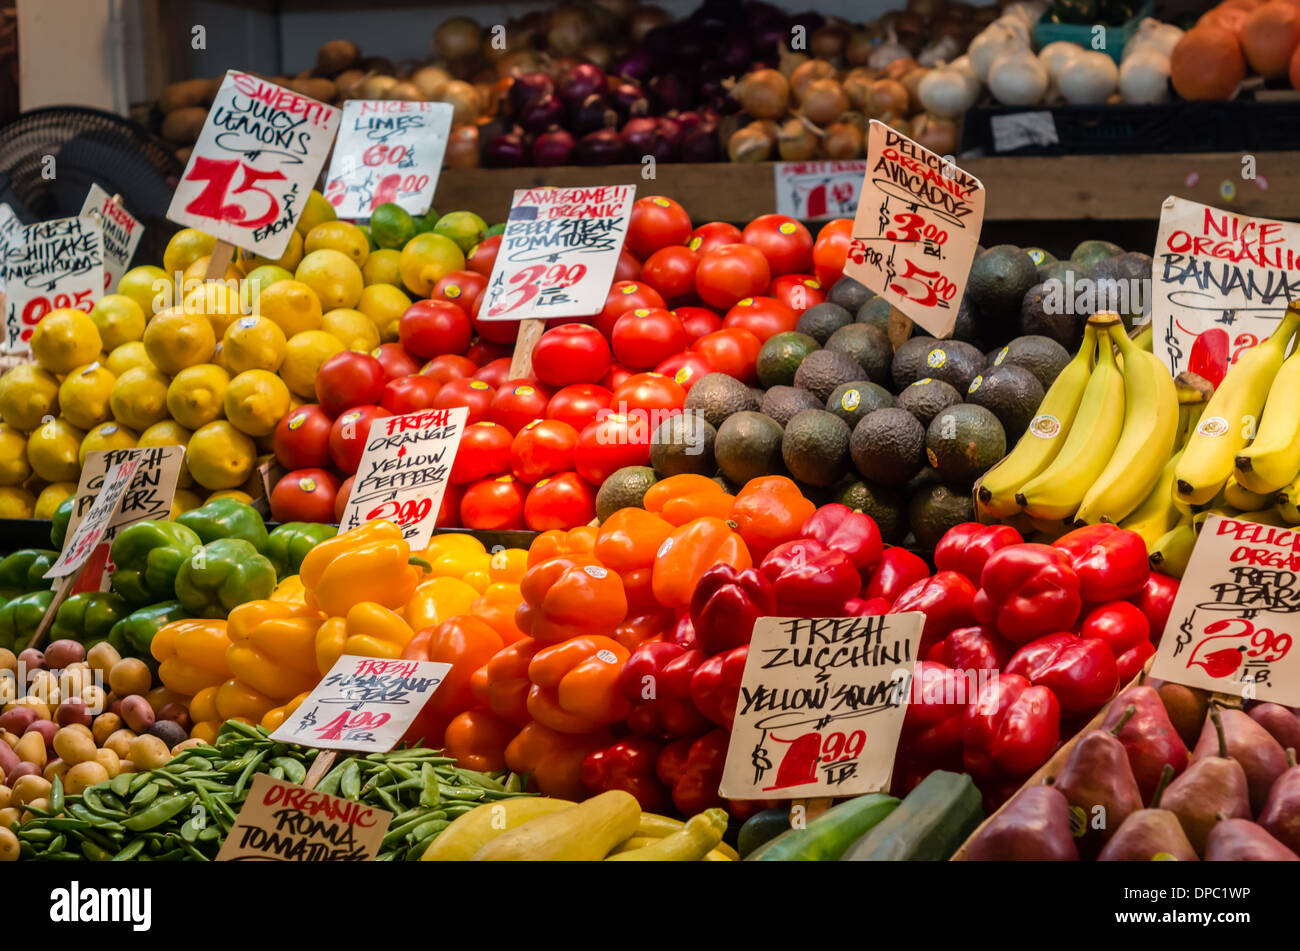 Display of fruits and vegetables with signs at a produce market stall Pike Place Market Seattle, Washington, USA - Stock Image